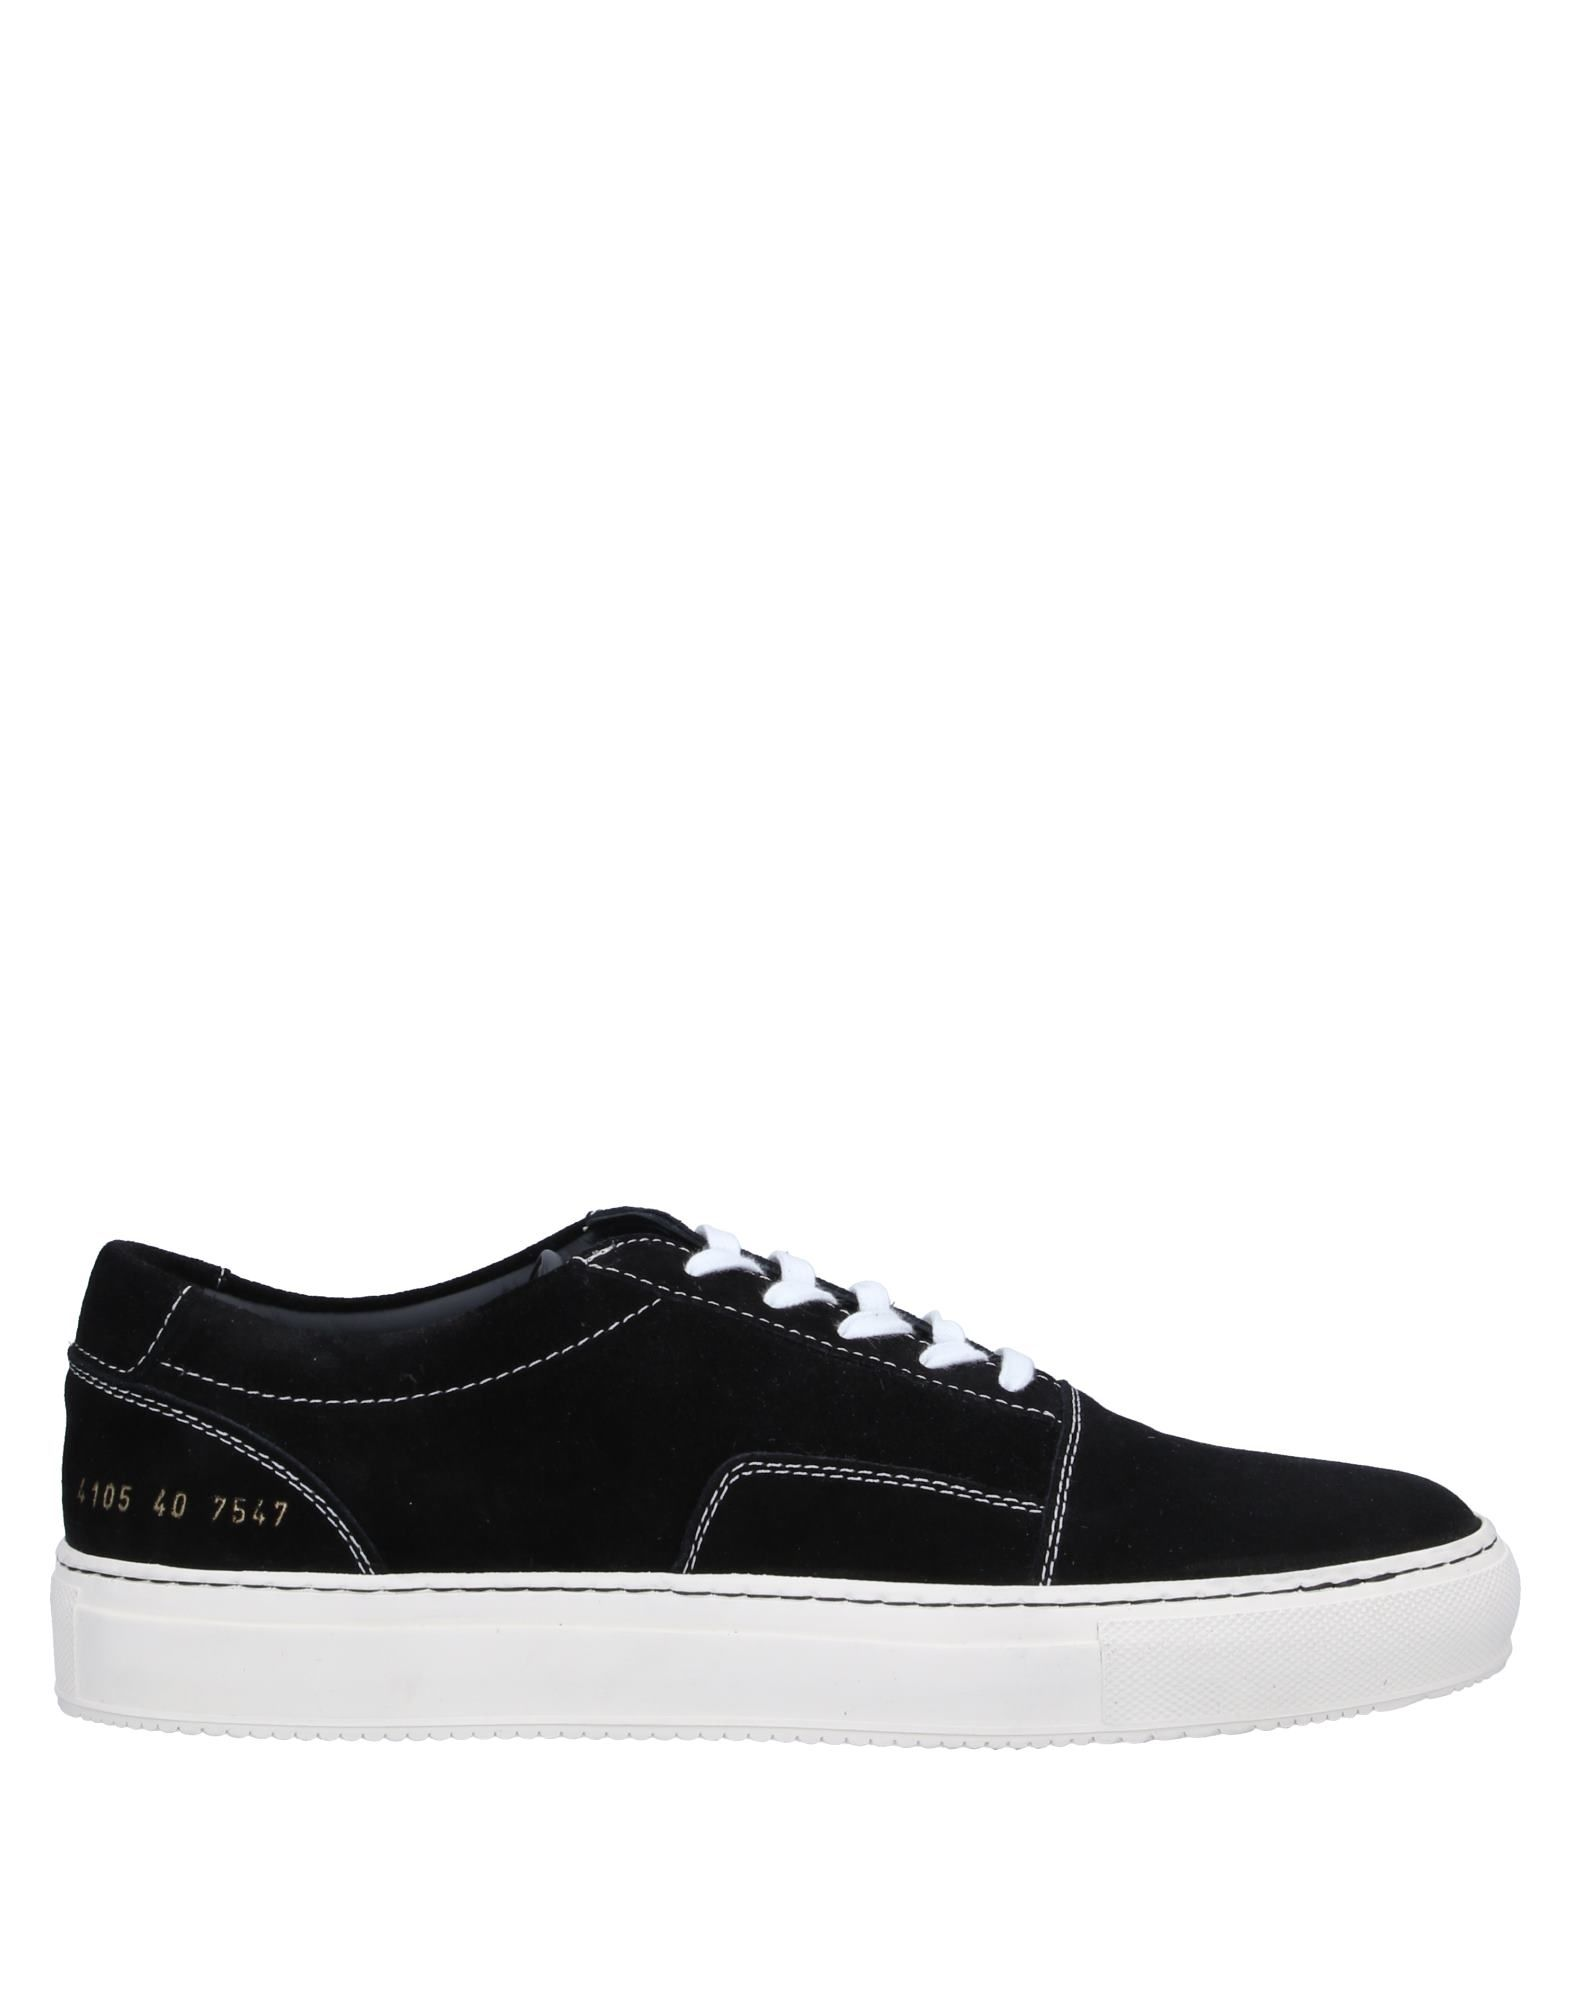 WOMAN by COMMON PROJECTS Низкие кеды и кроссовки демисезонные ботинки common projects obscure achilles mesh low grey page 2